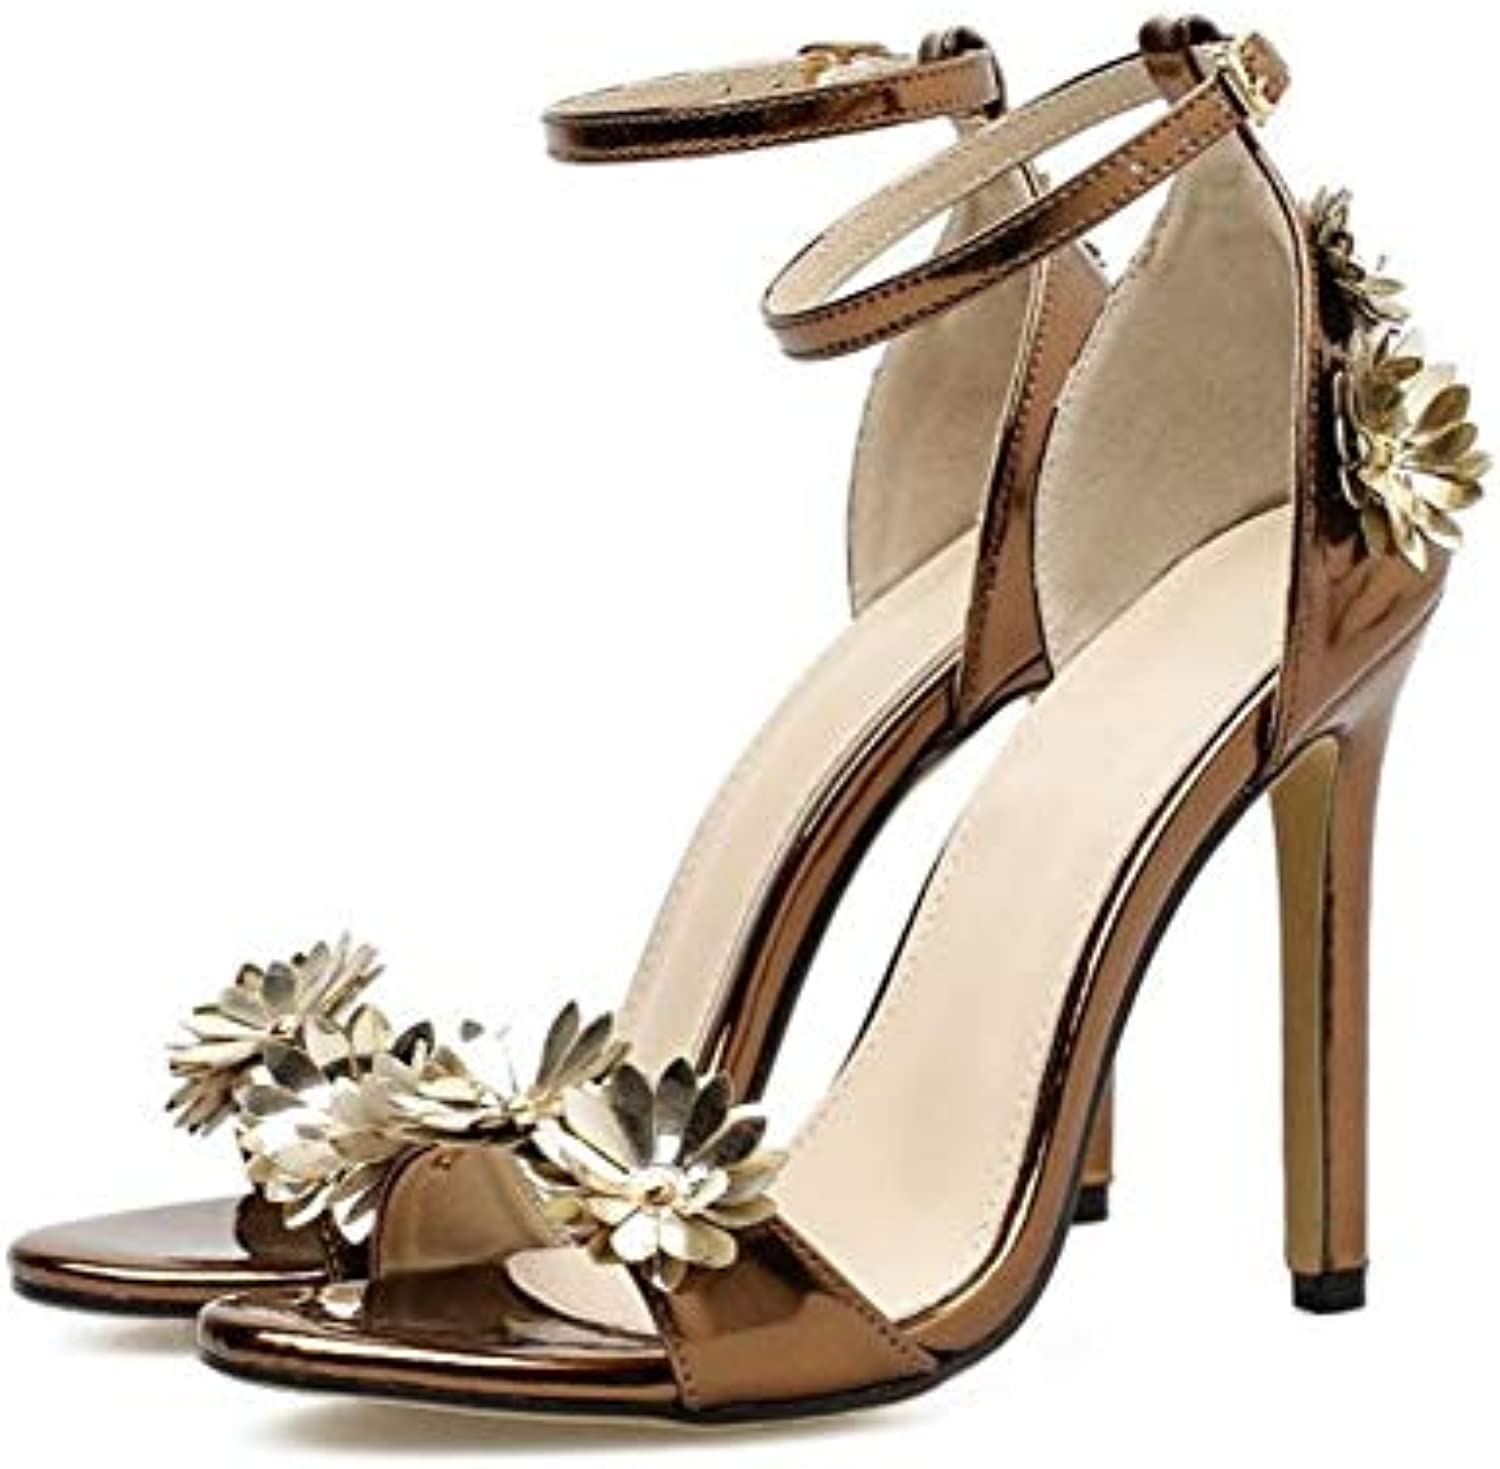 JQfashion Ladies'High Heels Pointed Thin Heels and Buckled Sandals Flower Metal Texture Lacquer Leather